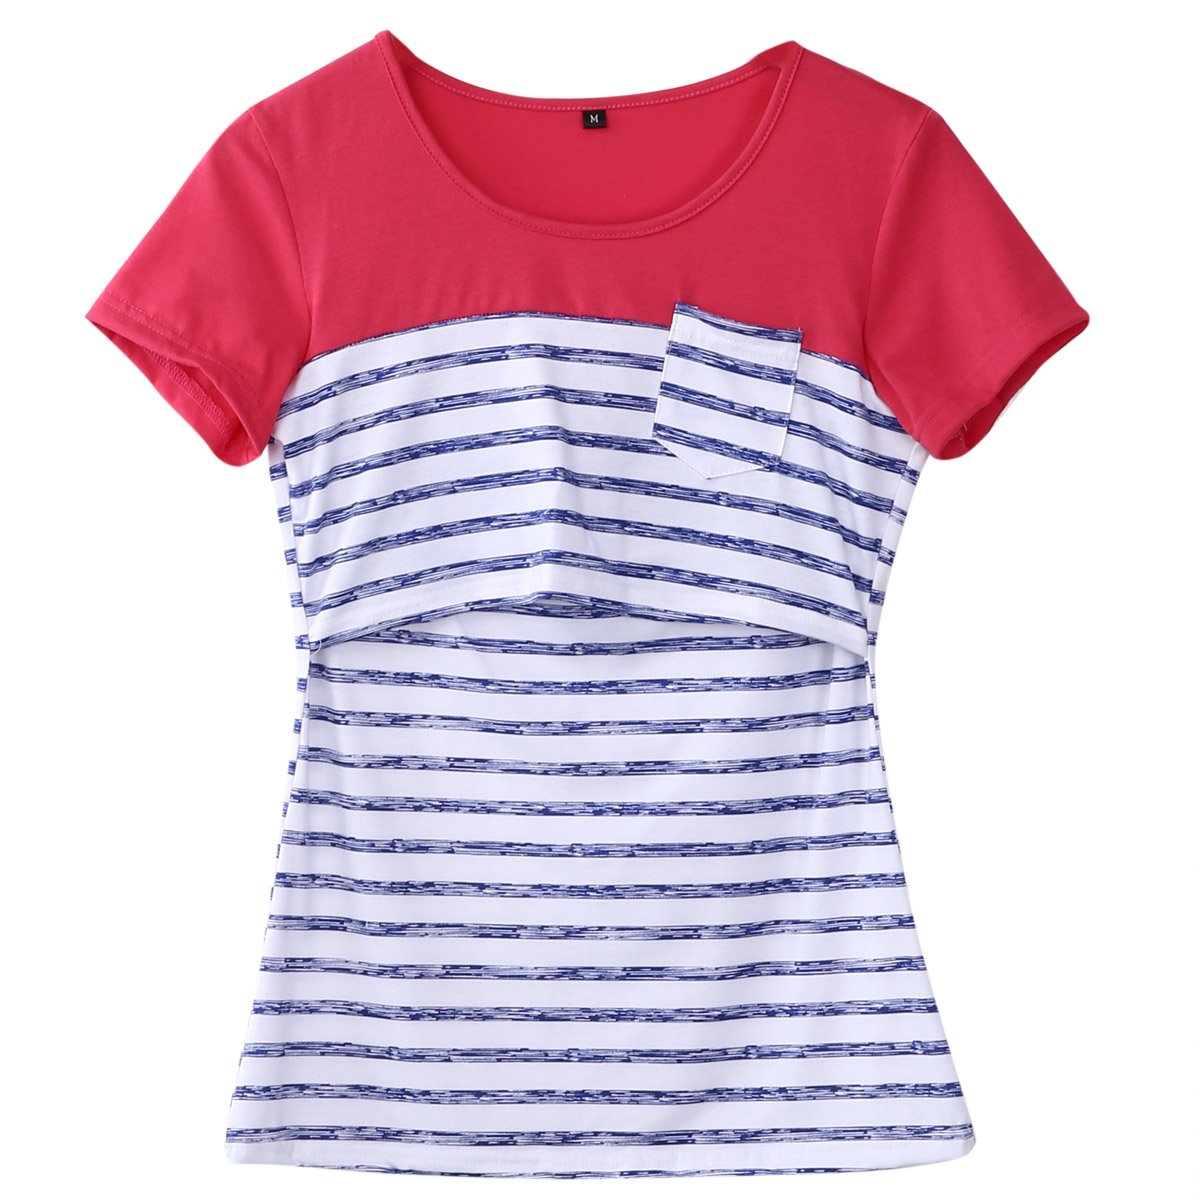 Maternity Breastfeeding Clothes Ice Silk Summer Tees Print Nursing T-shirt Top